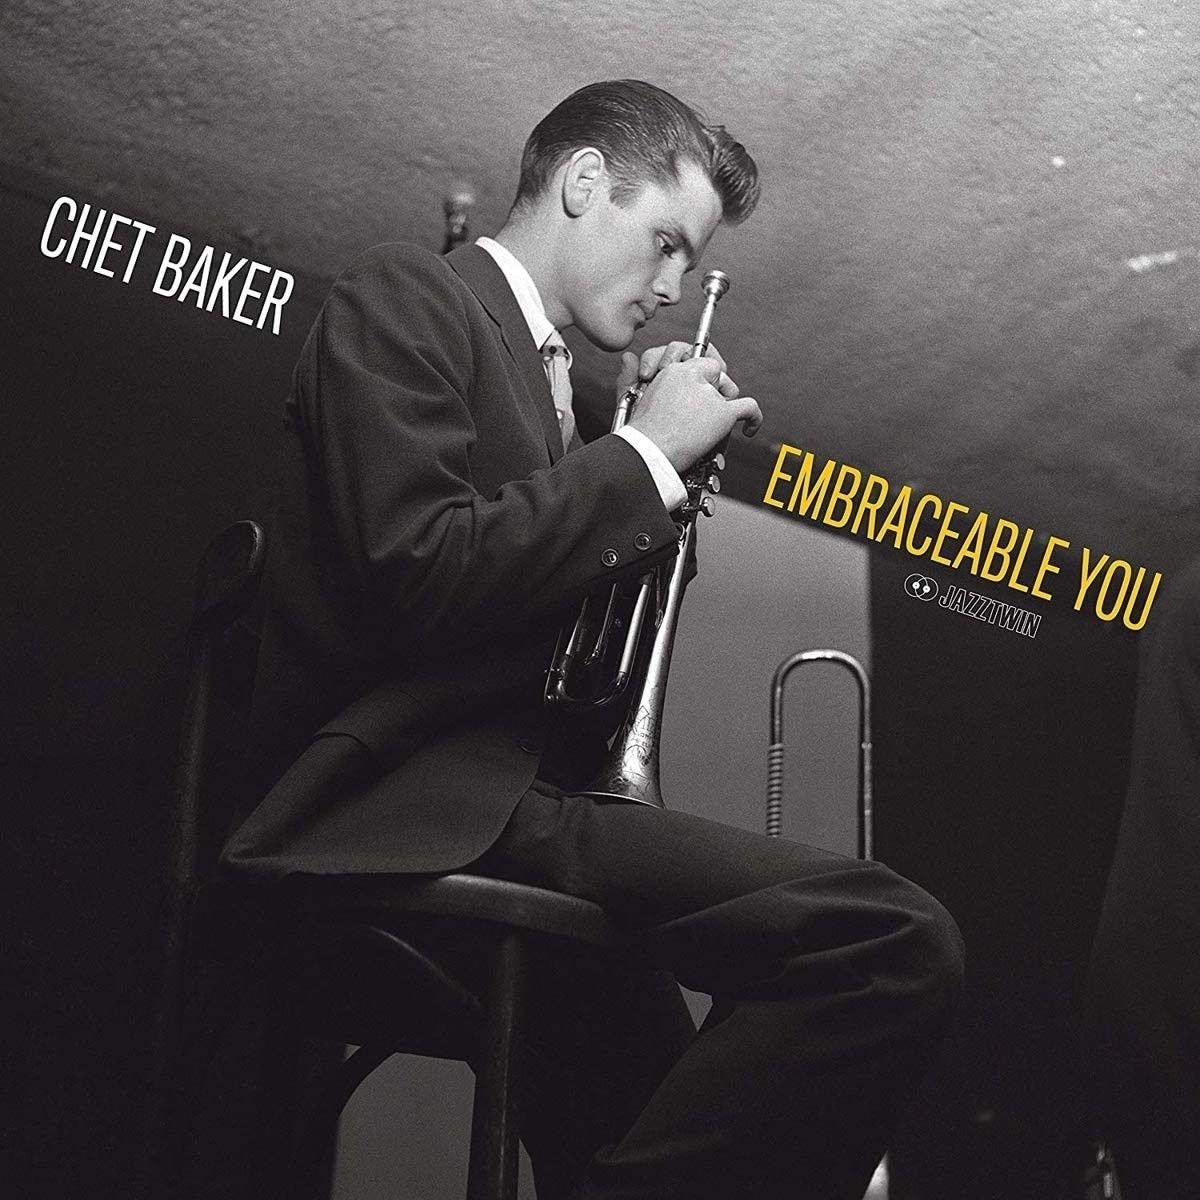 Chet Baker - Embraceable You: The Complete Session CD - 8436569190203